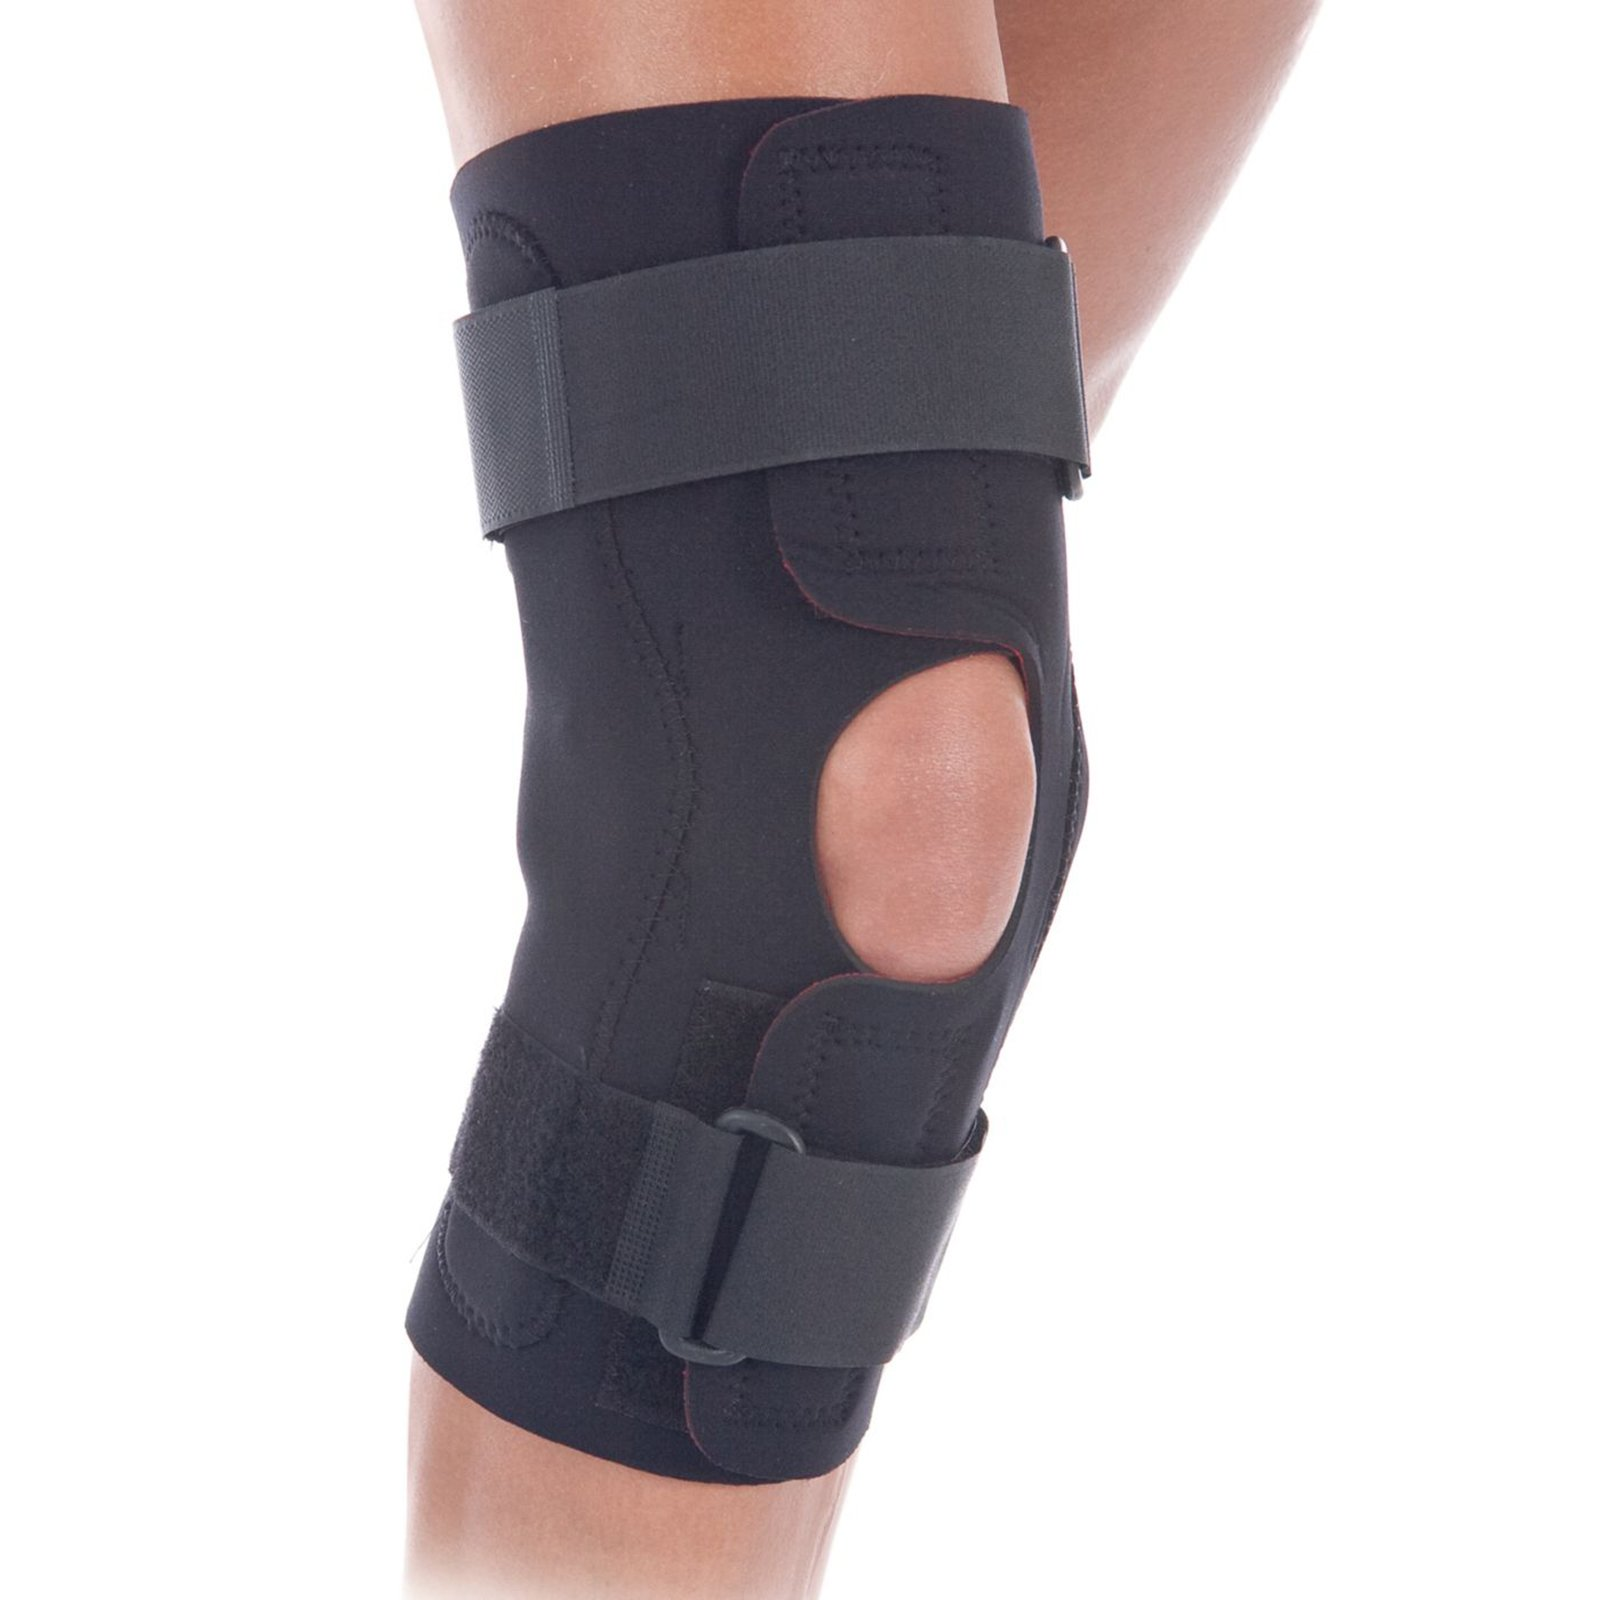 RolyanFit Wraparound Hinged Knee Brace, Comfort Wrap Knee Support & Stabilizer for Right or Left Leg, Supports Knee Joints & Muscles for Sports Wear, Low Profile Hinges & Secure Straps, 4X-Large